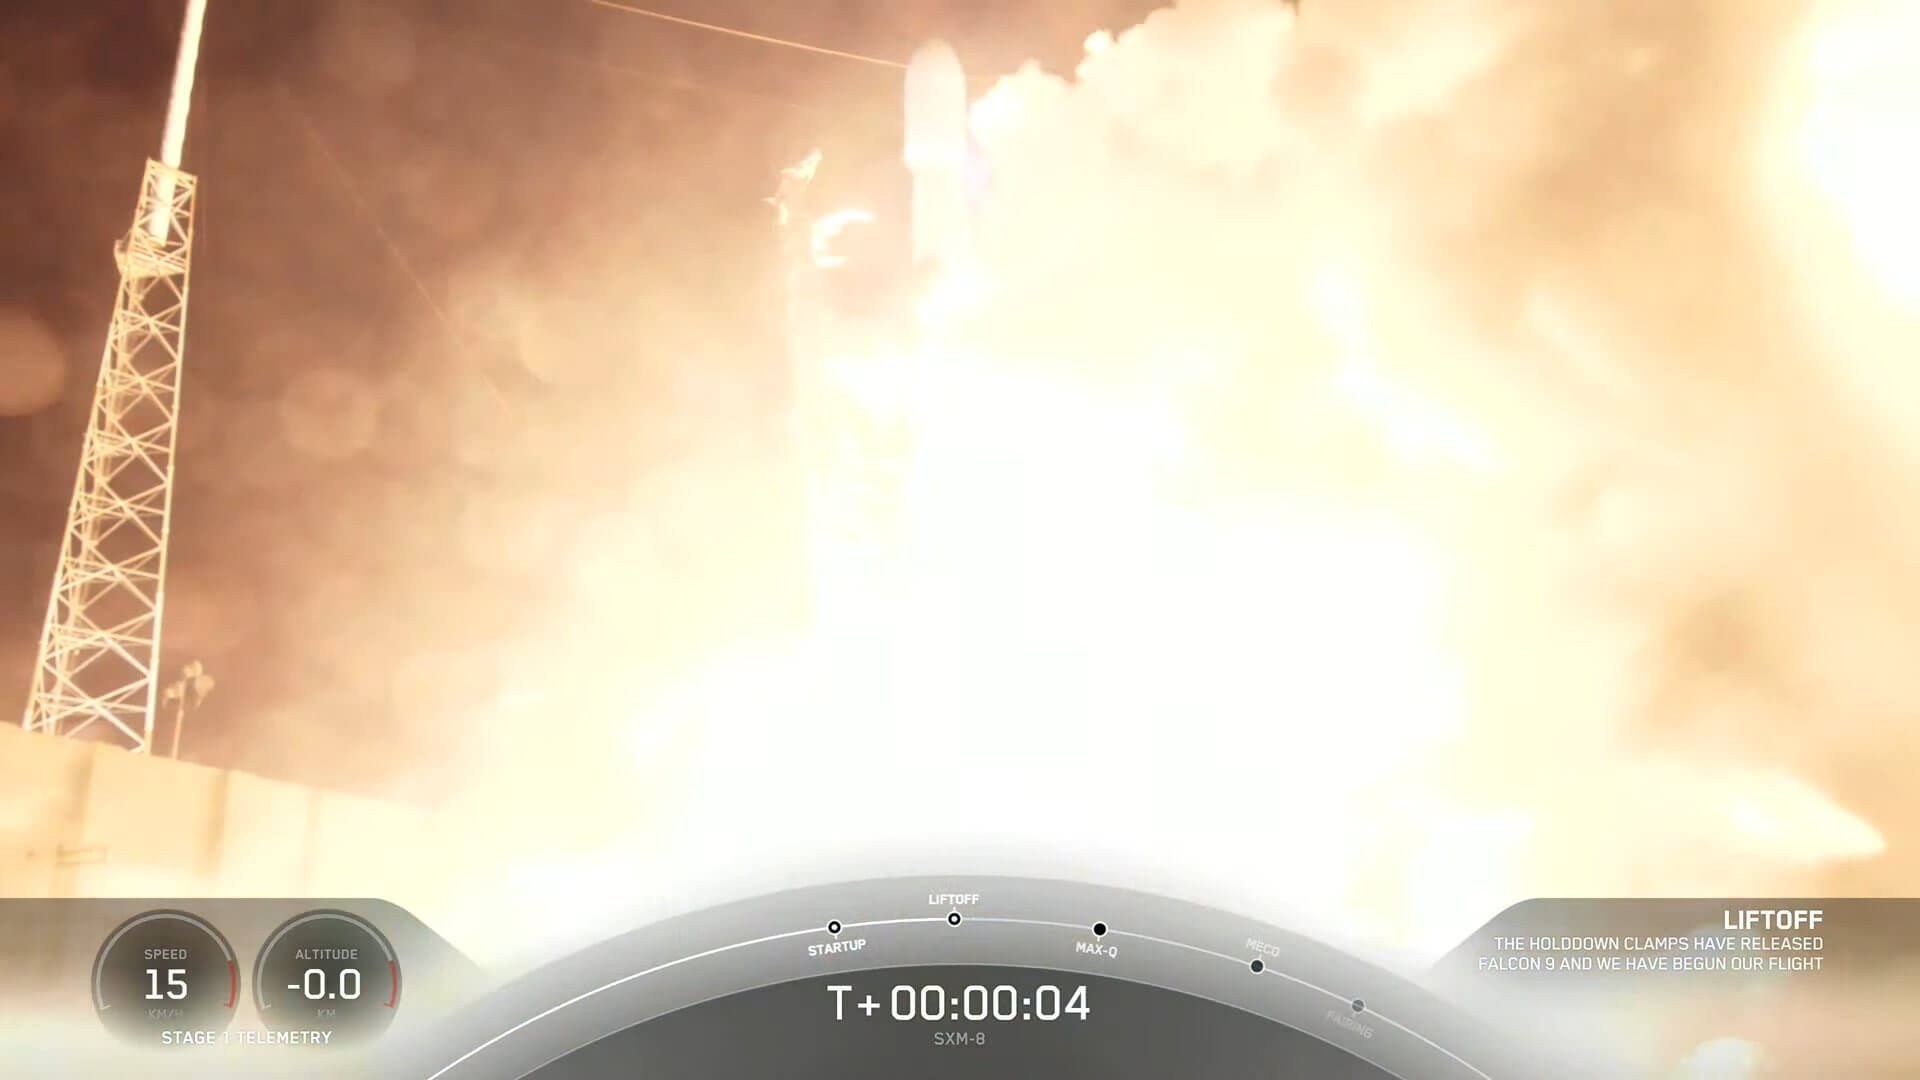 SpaceX launches Sirius XM with a successful midnight-hour take off